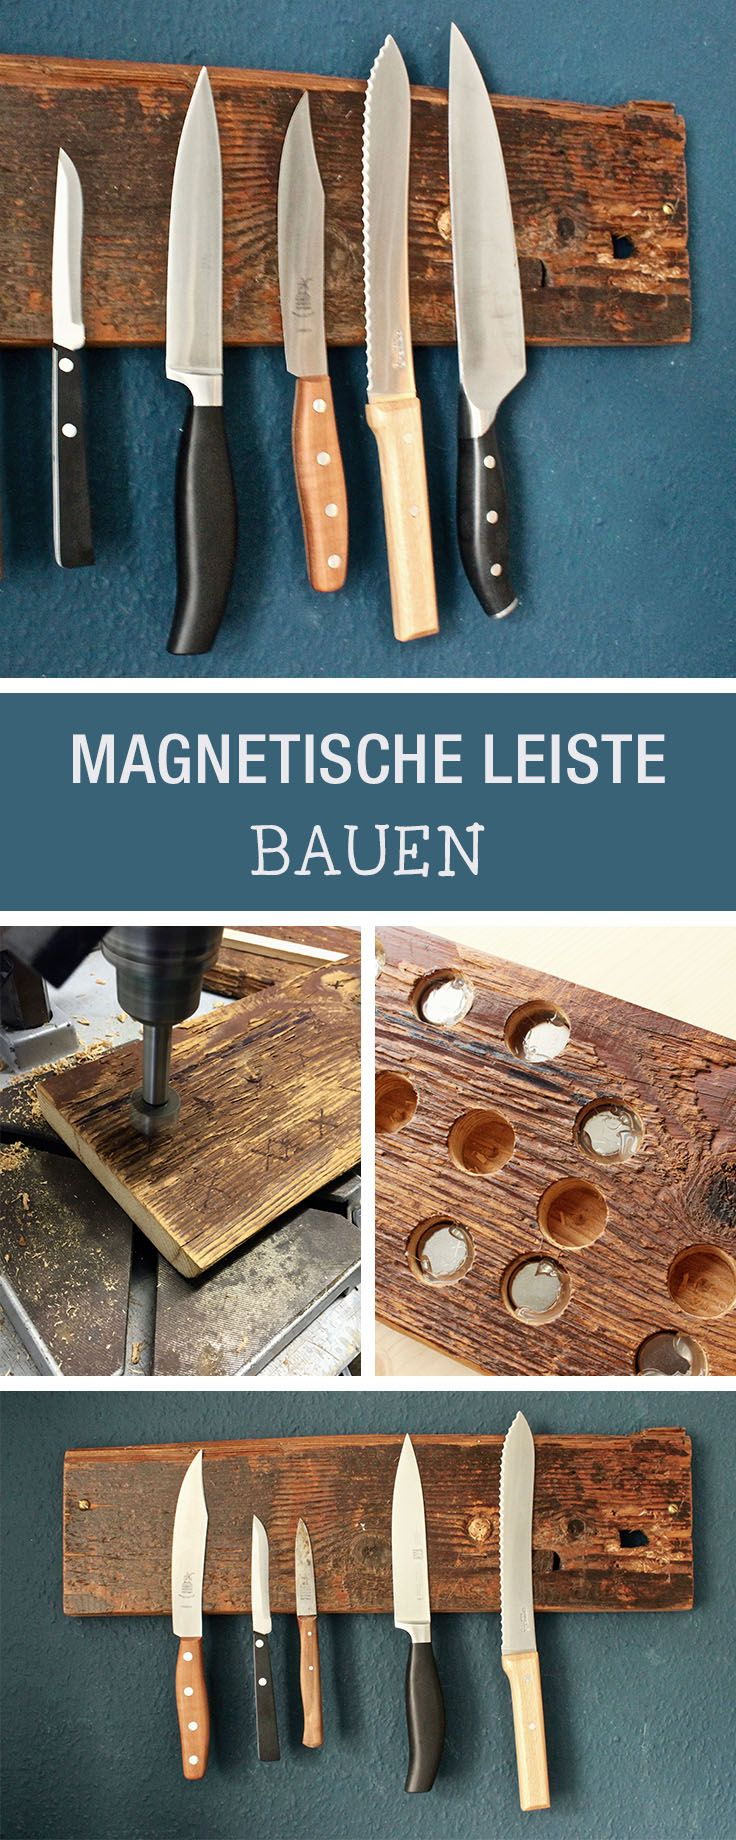 DIY: Messerblock aus Holz selberbauen, hängender Messerblock / hanging storage idea for knifes, diy furniture via DaWanda.com